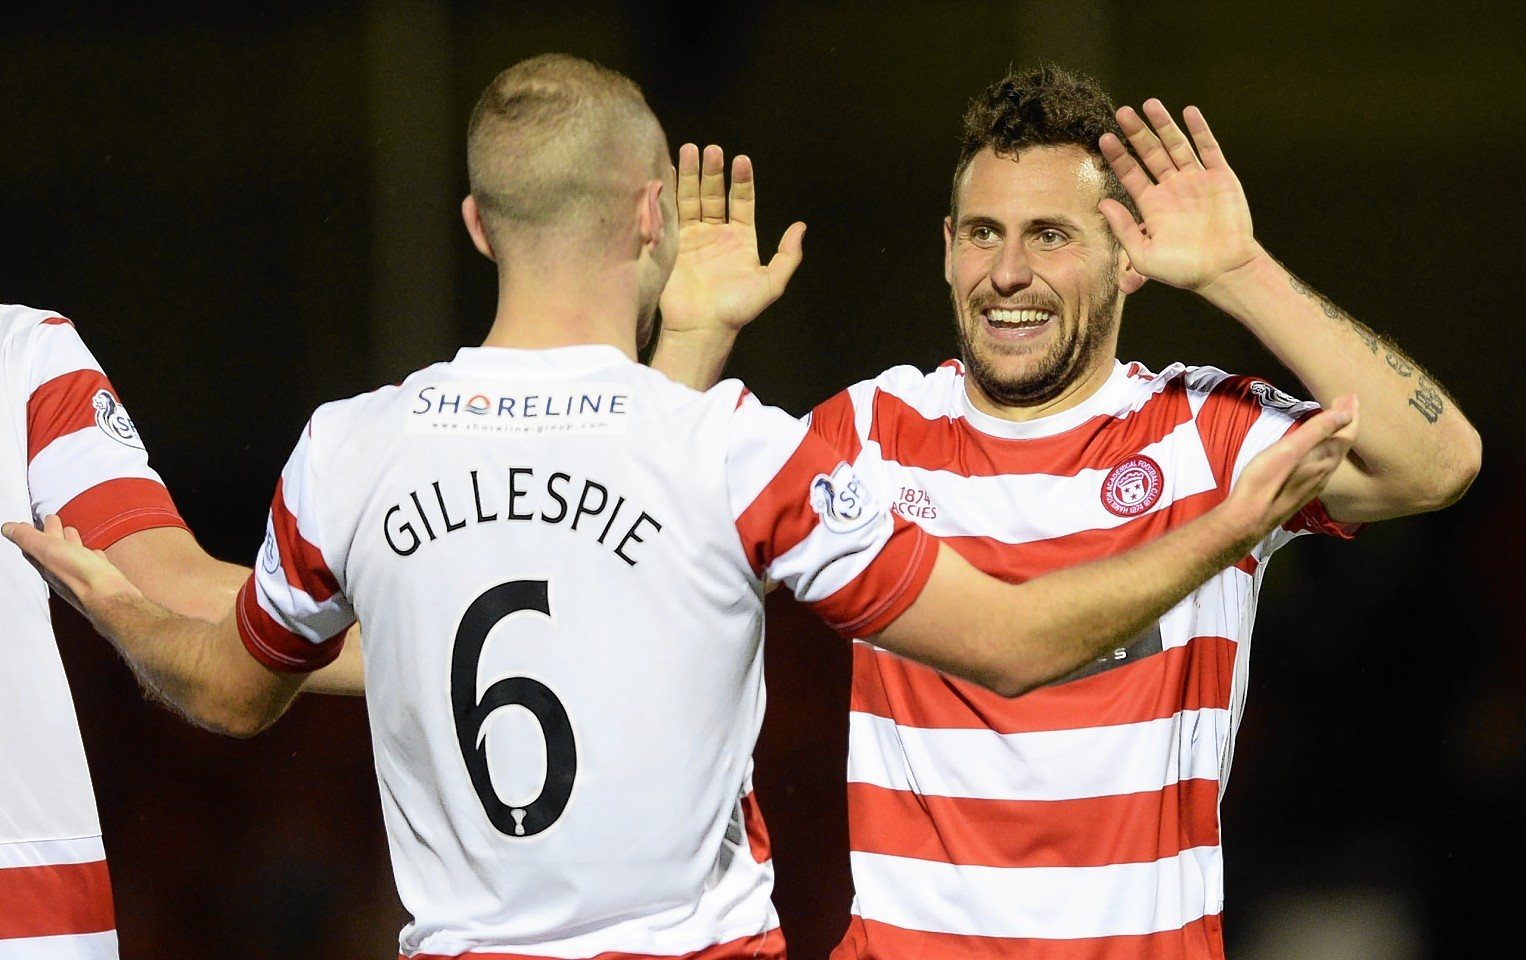 Andreu and Gillespie celebrate Hamilton's second goal